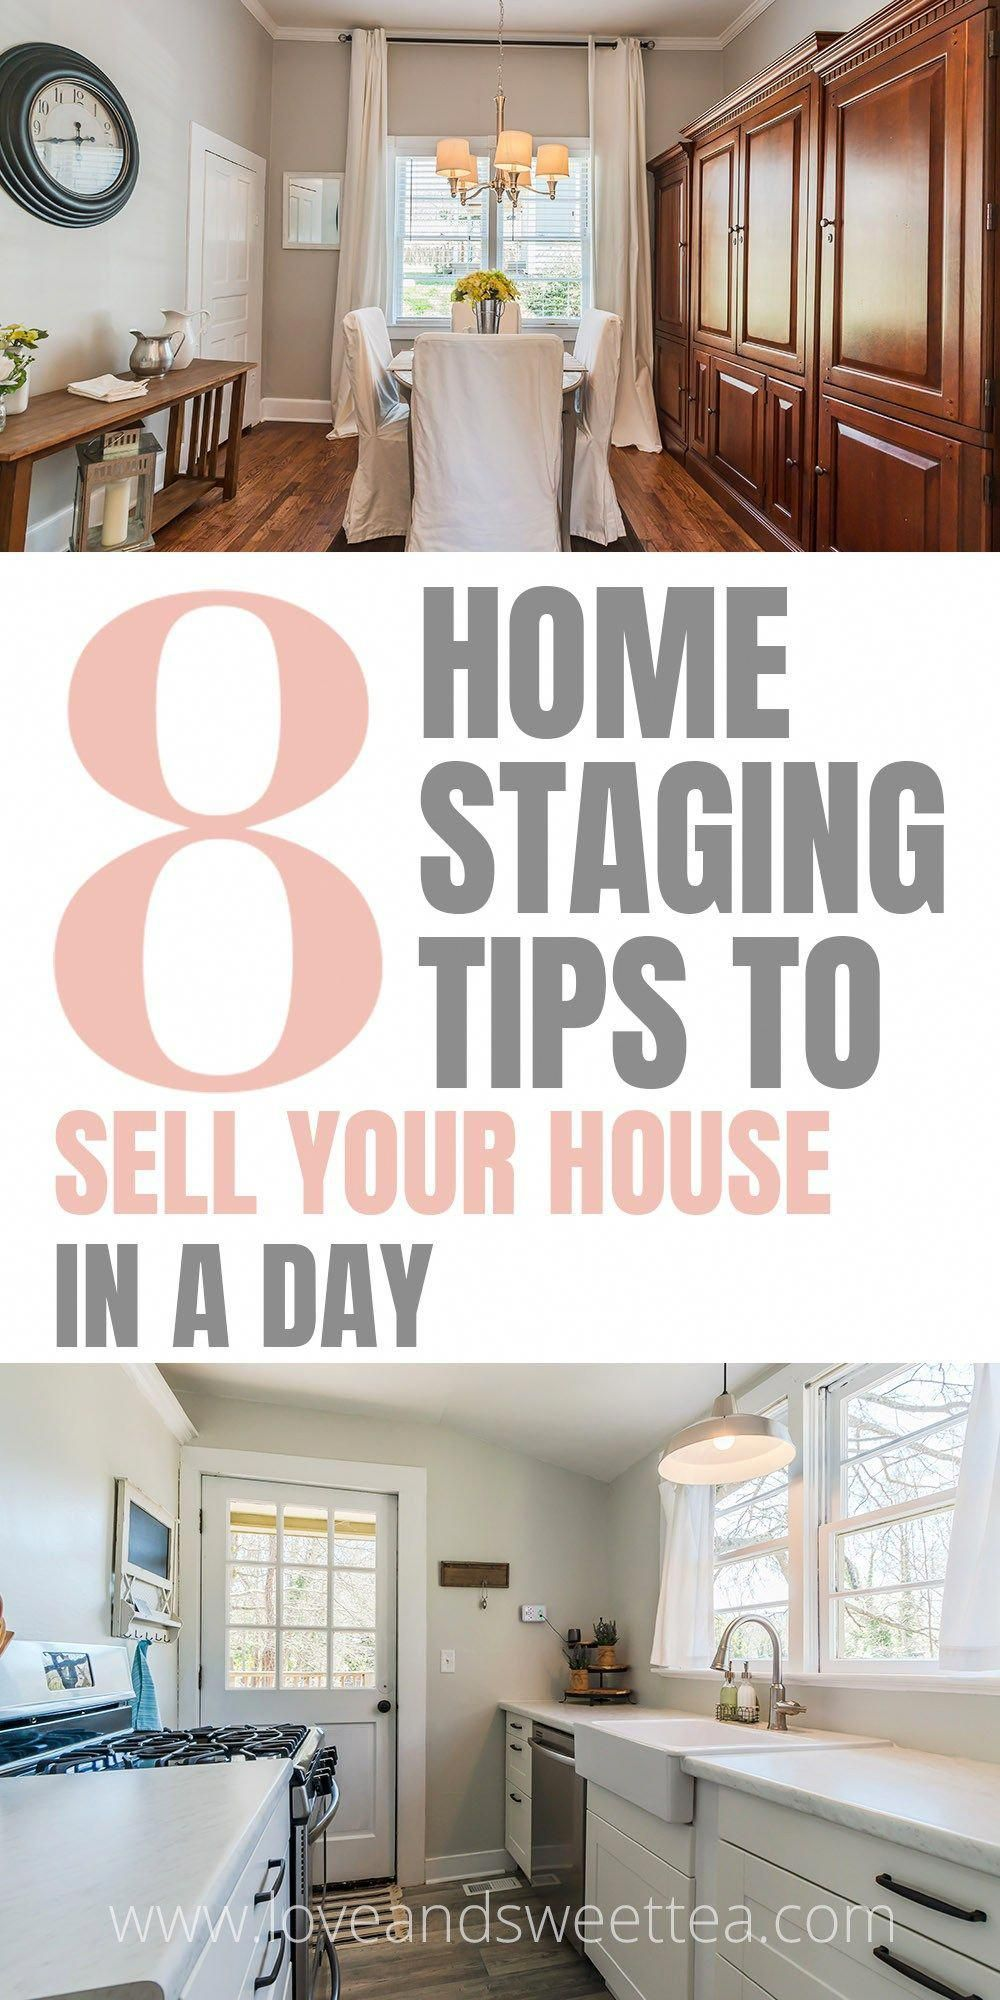 This girl has some really great home staging tips! Definitely keeping this for when we get ready to sell our house. #homediy #style #shopping #styles #outfit #pretty #girl #girls #beauty #beautiful #me #cute #stylish #photooftheday #swag #dress #shoes #diy #design #fashion #homedecor